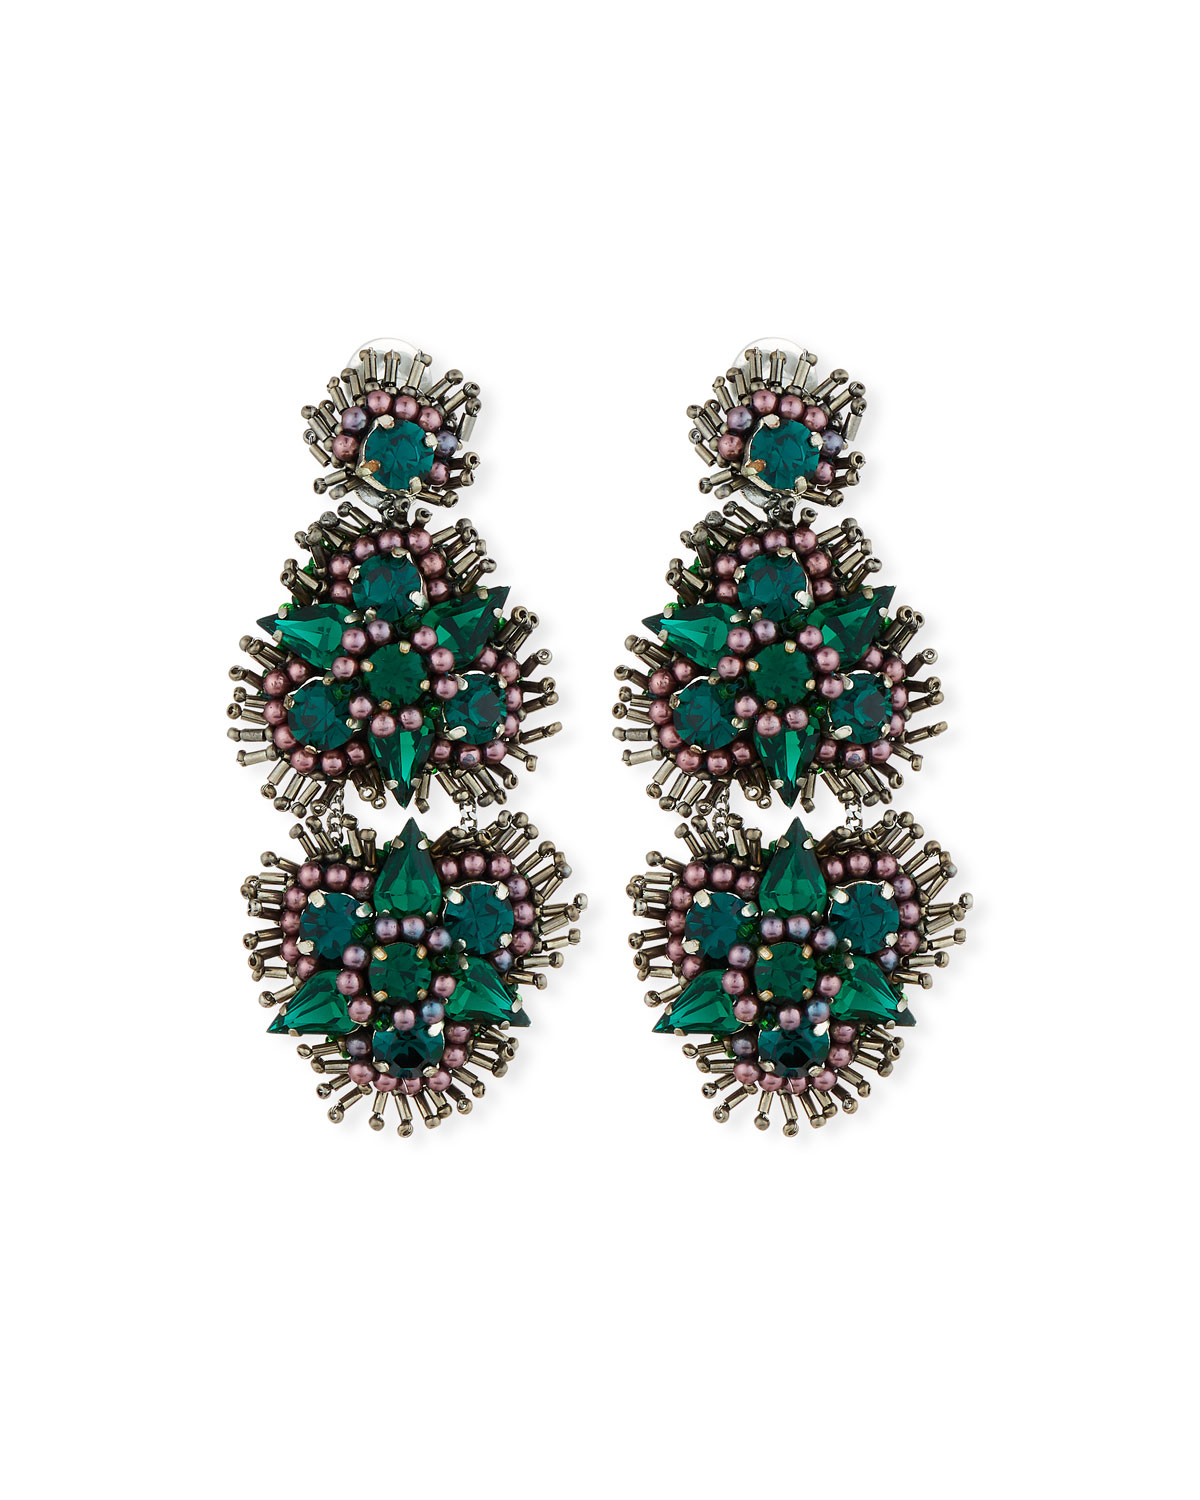 Mignonne Gavigan ANASTASIA CRYSTAL CLIP-ON EARRINGS